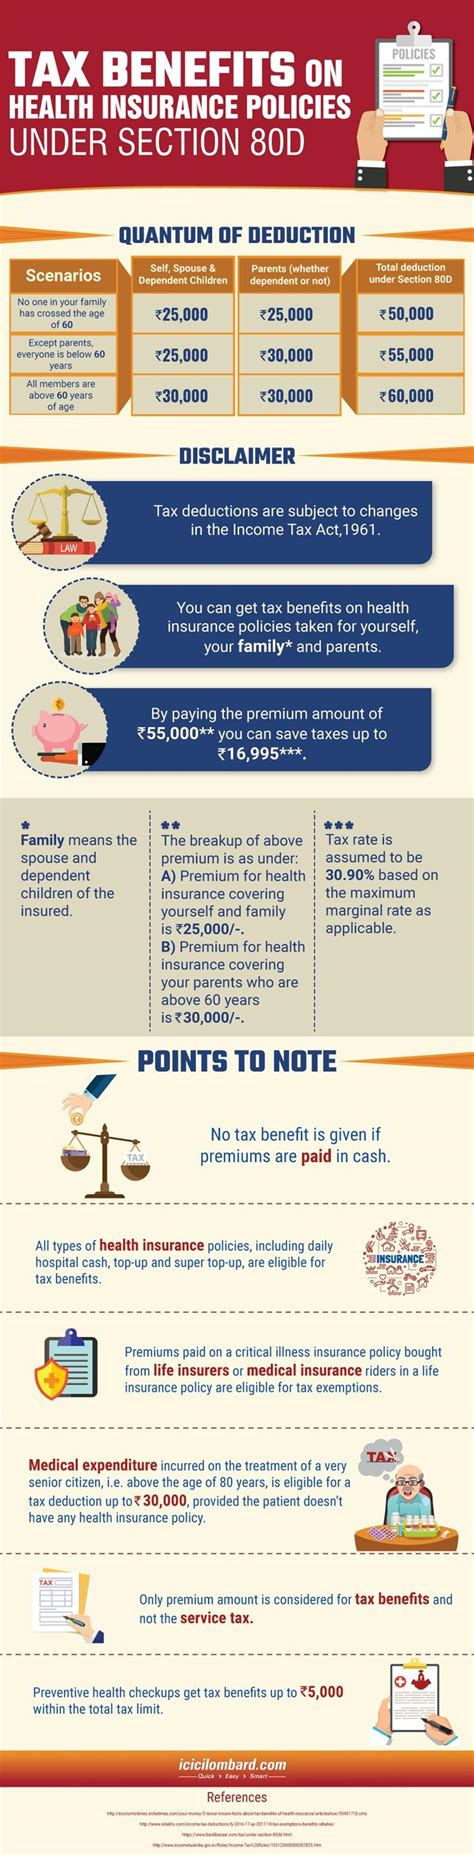 section 80d tax benefits on health insurance policies under section 80d